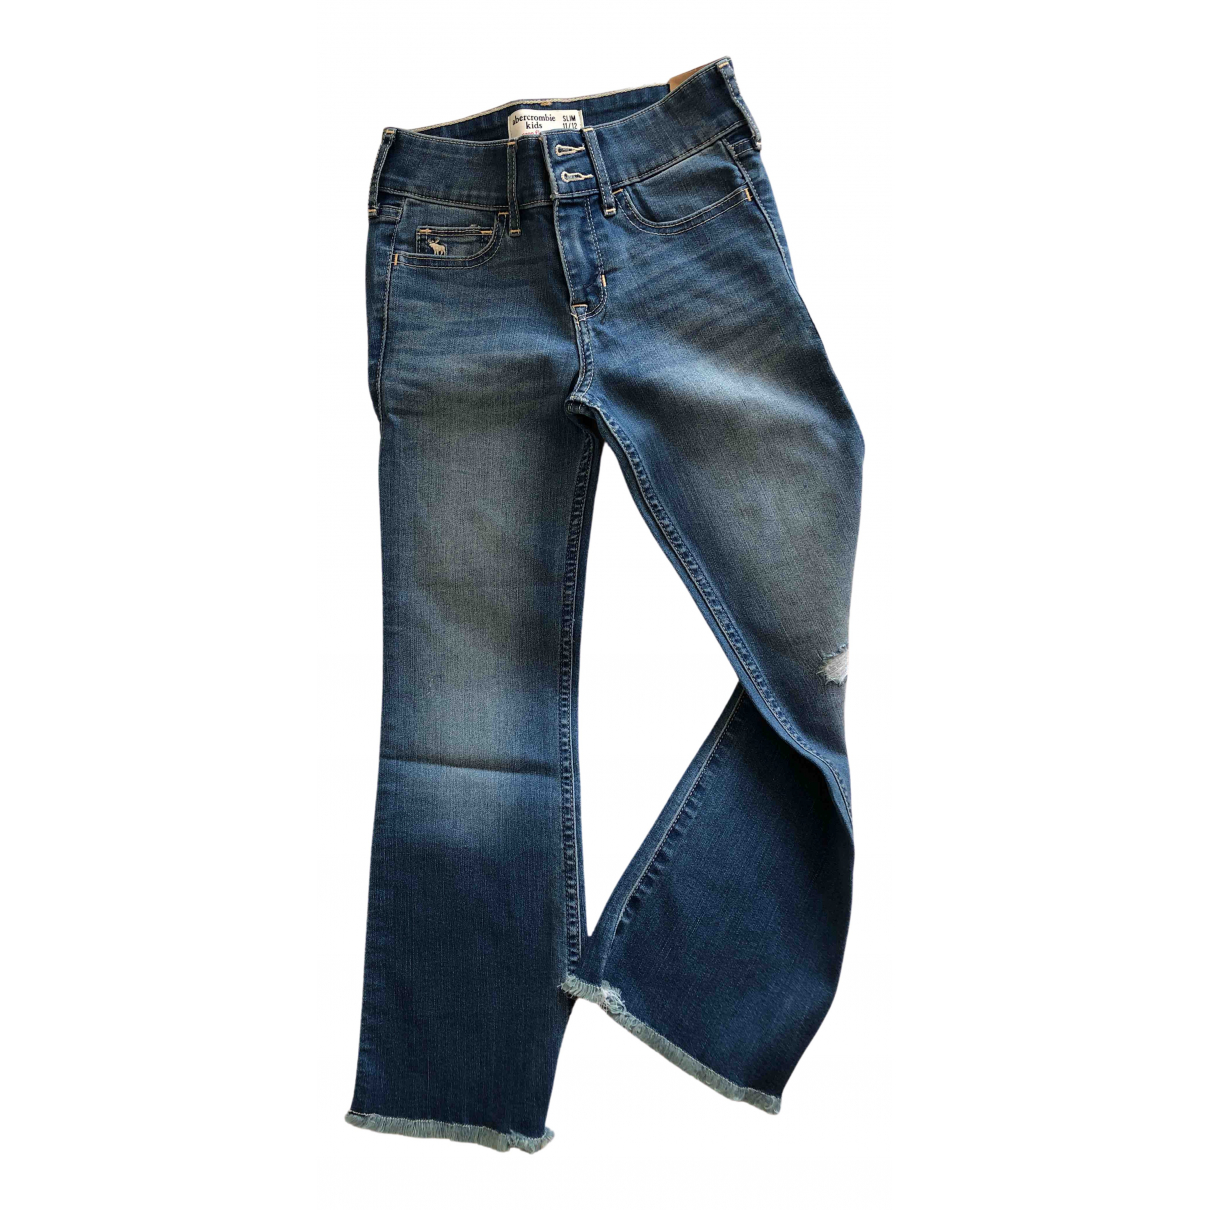 Abercrombie & Fitch N Blue Cotton Trousers for Kids 12 years - XS FR